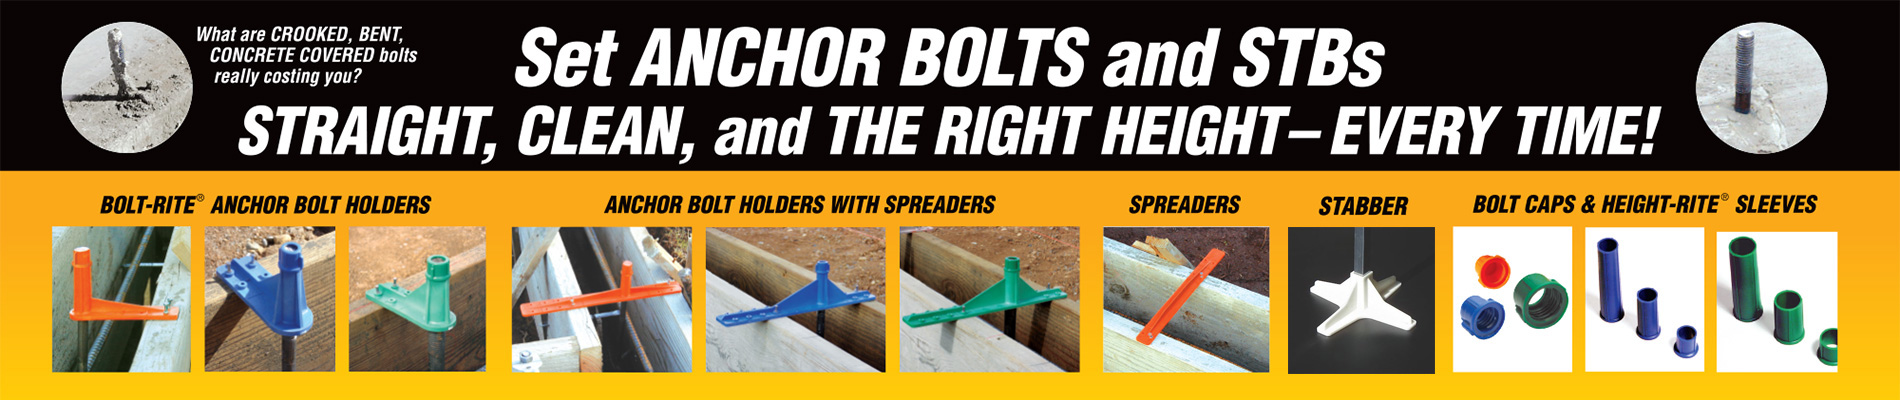 Anchor Bolts Info